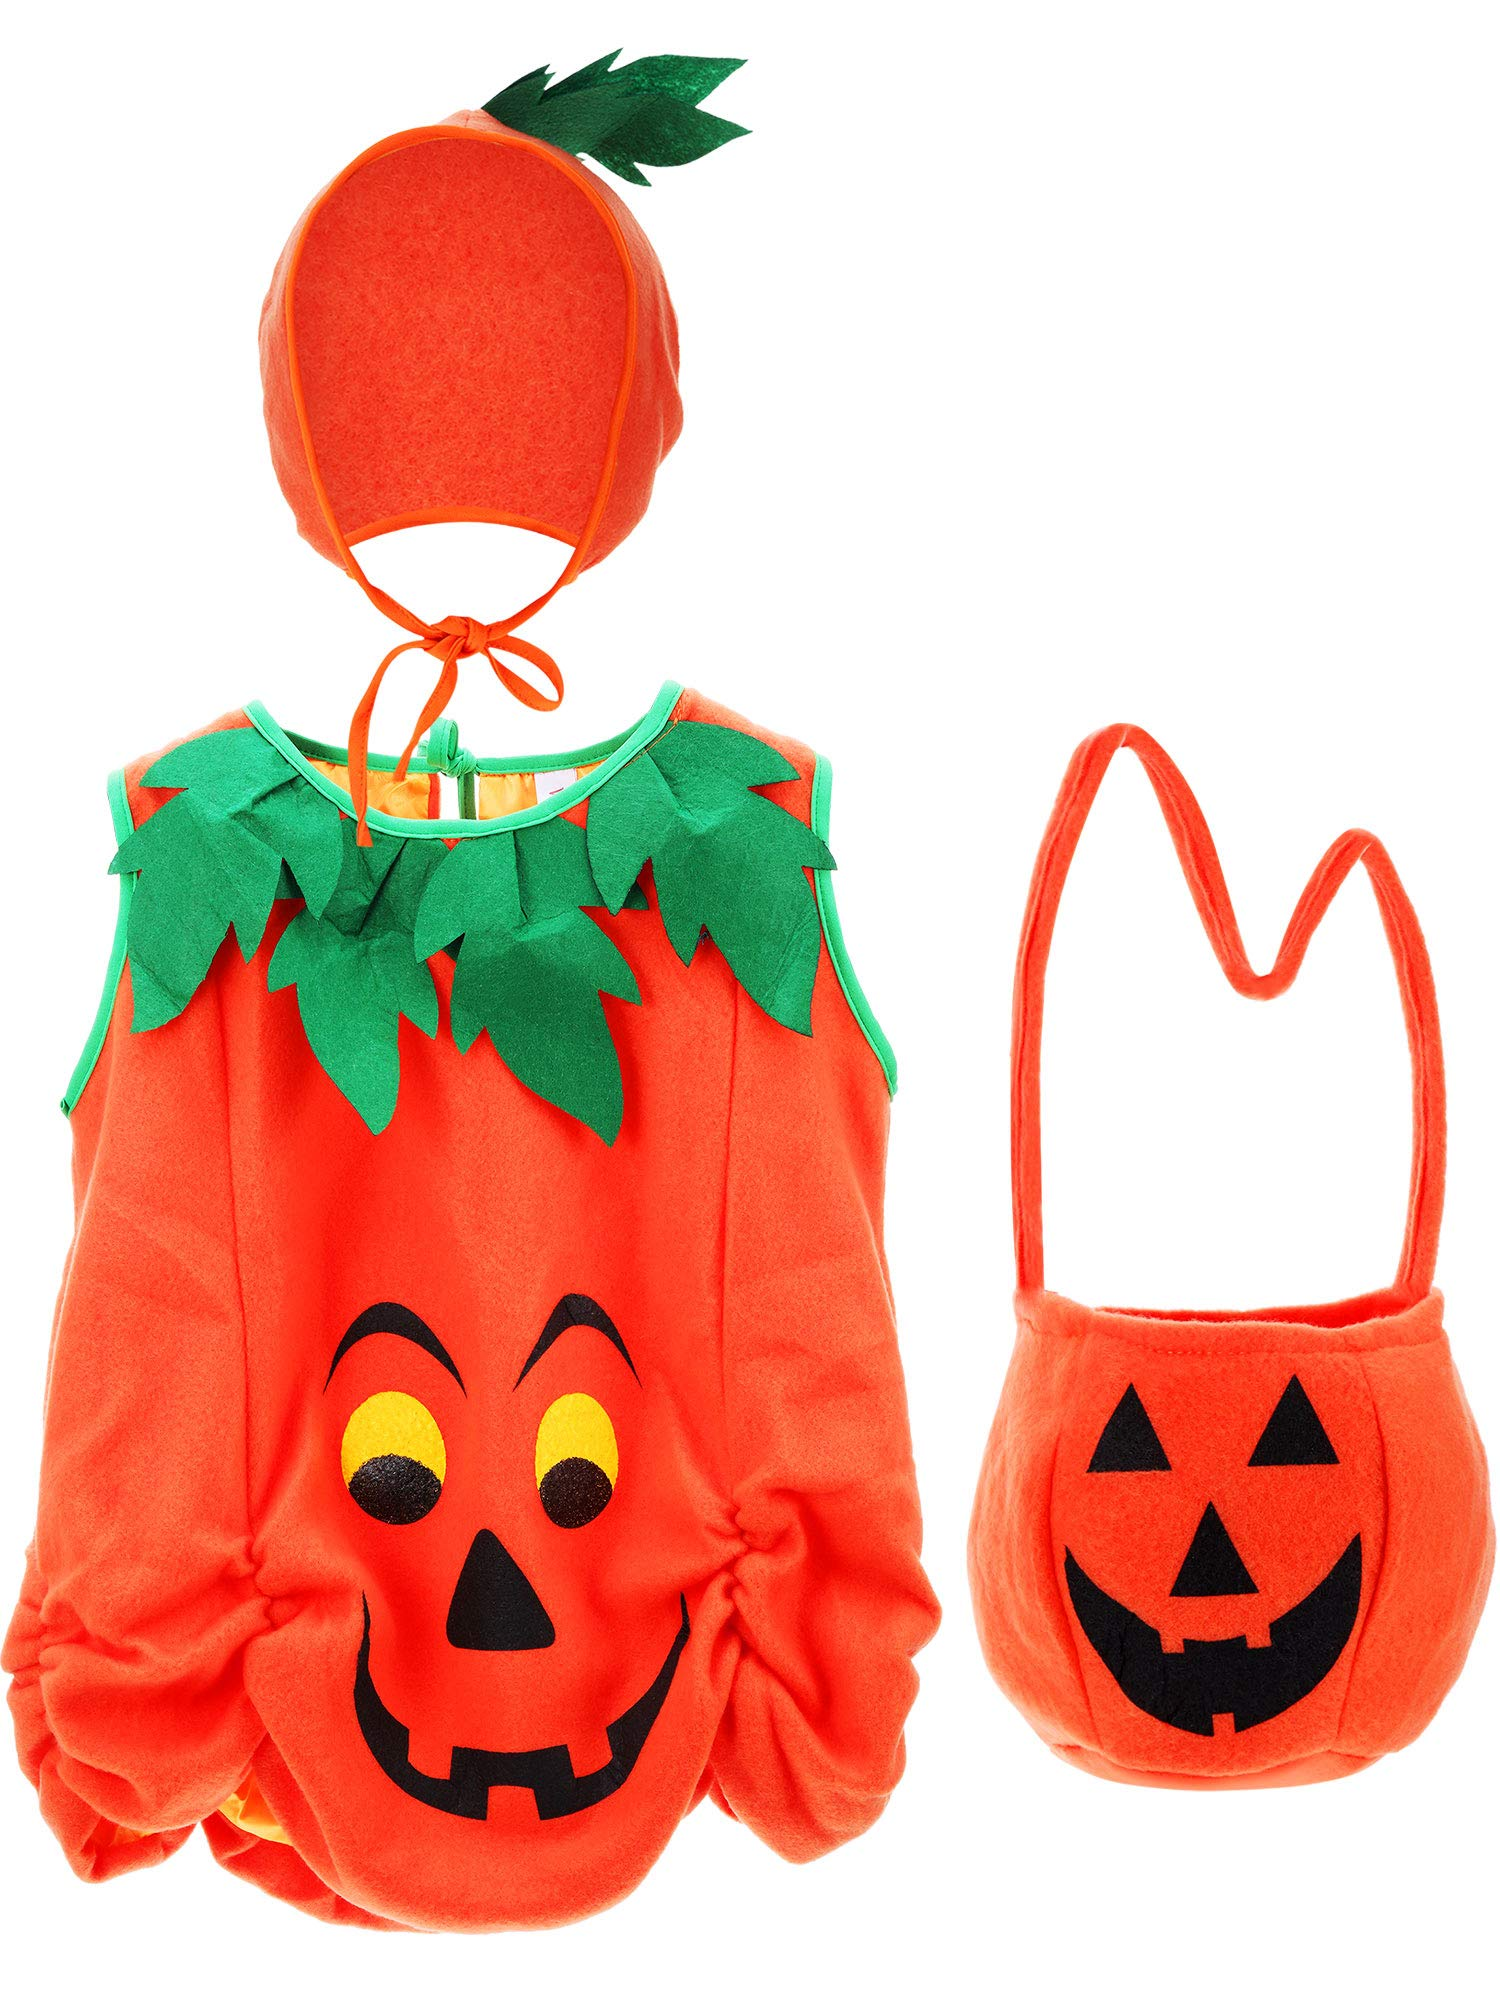 Tatuo Baby's Pumpkin Costume Pumpkin Clothes Kids Halloween Infant Costumes with Pumpkin Hat and Pumpkin Bag by Tatuo